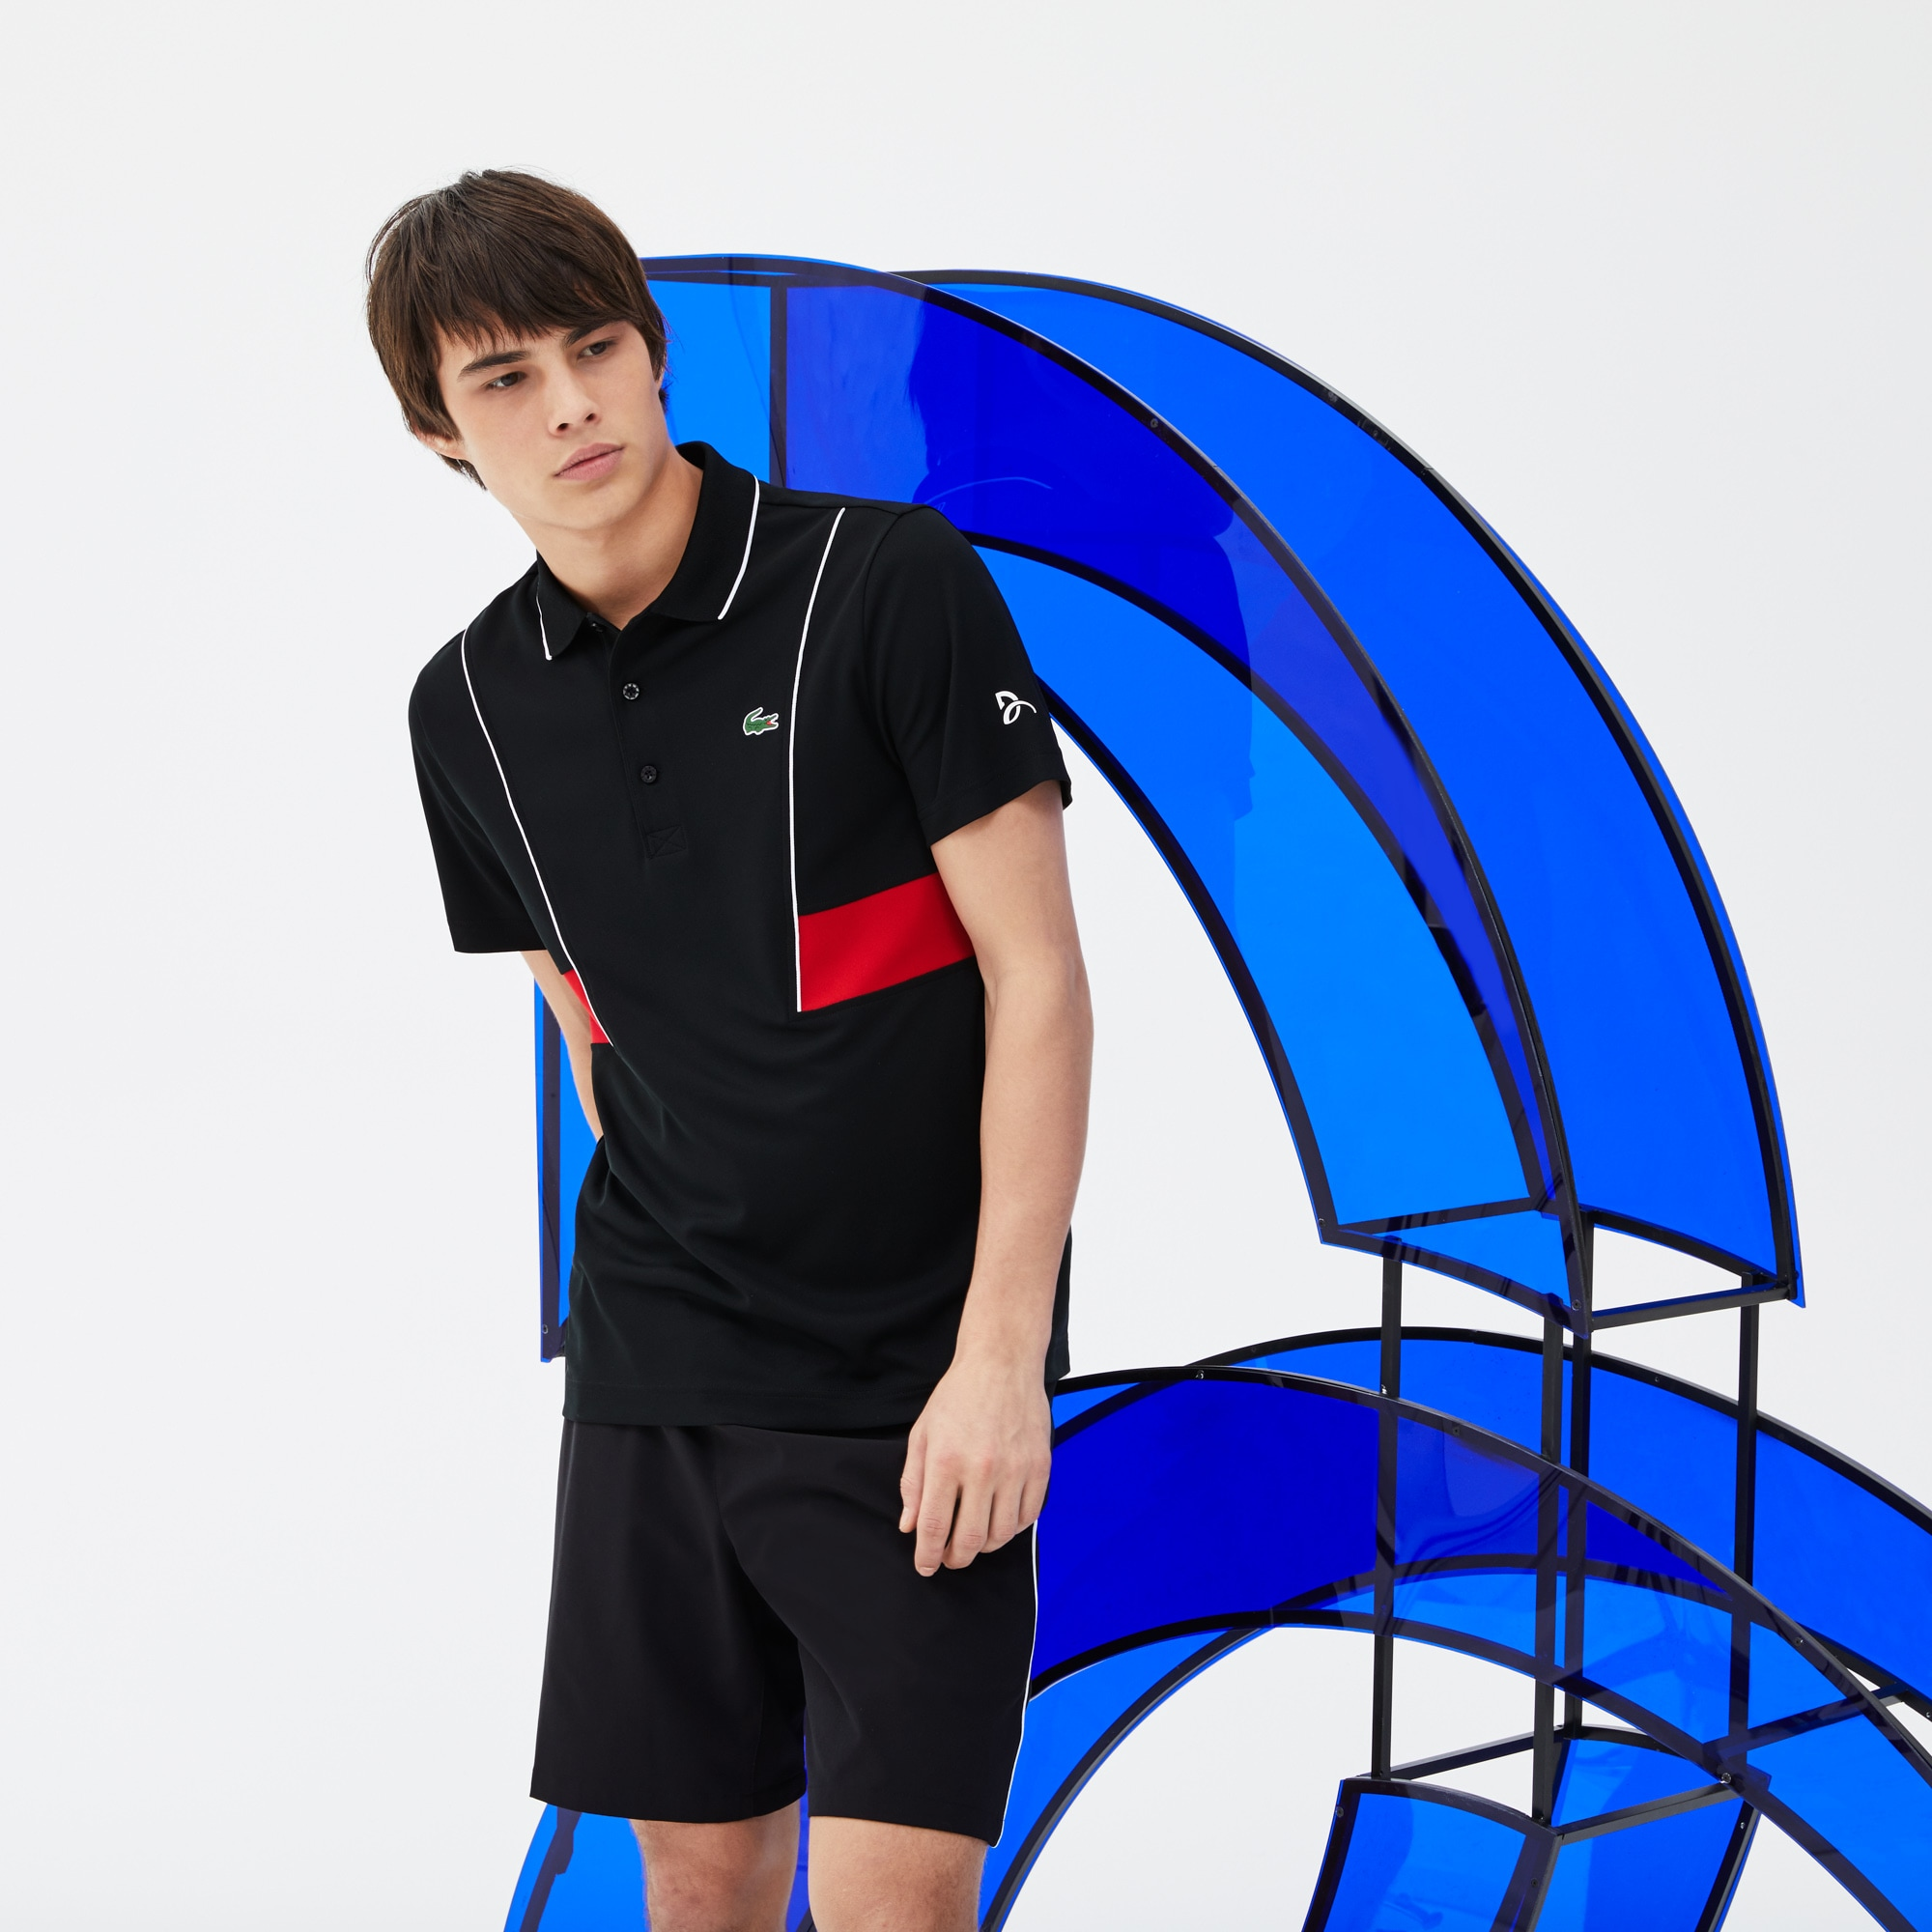 Men's SPORT Tech Piqué Polo - x Novak Djokovic